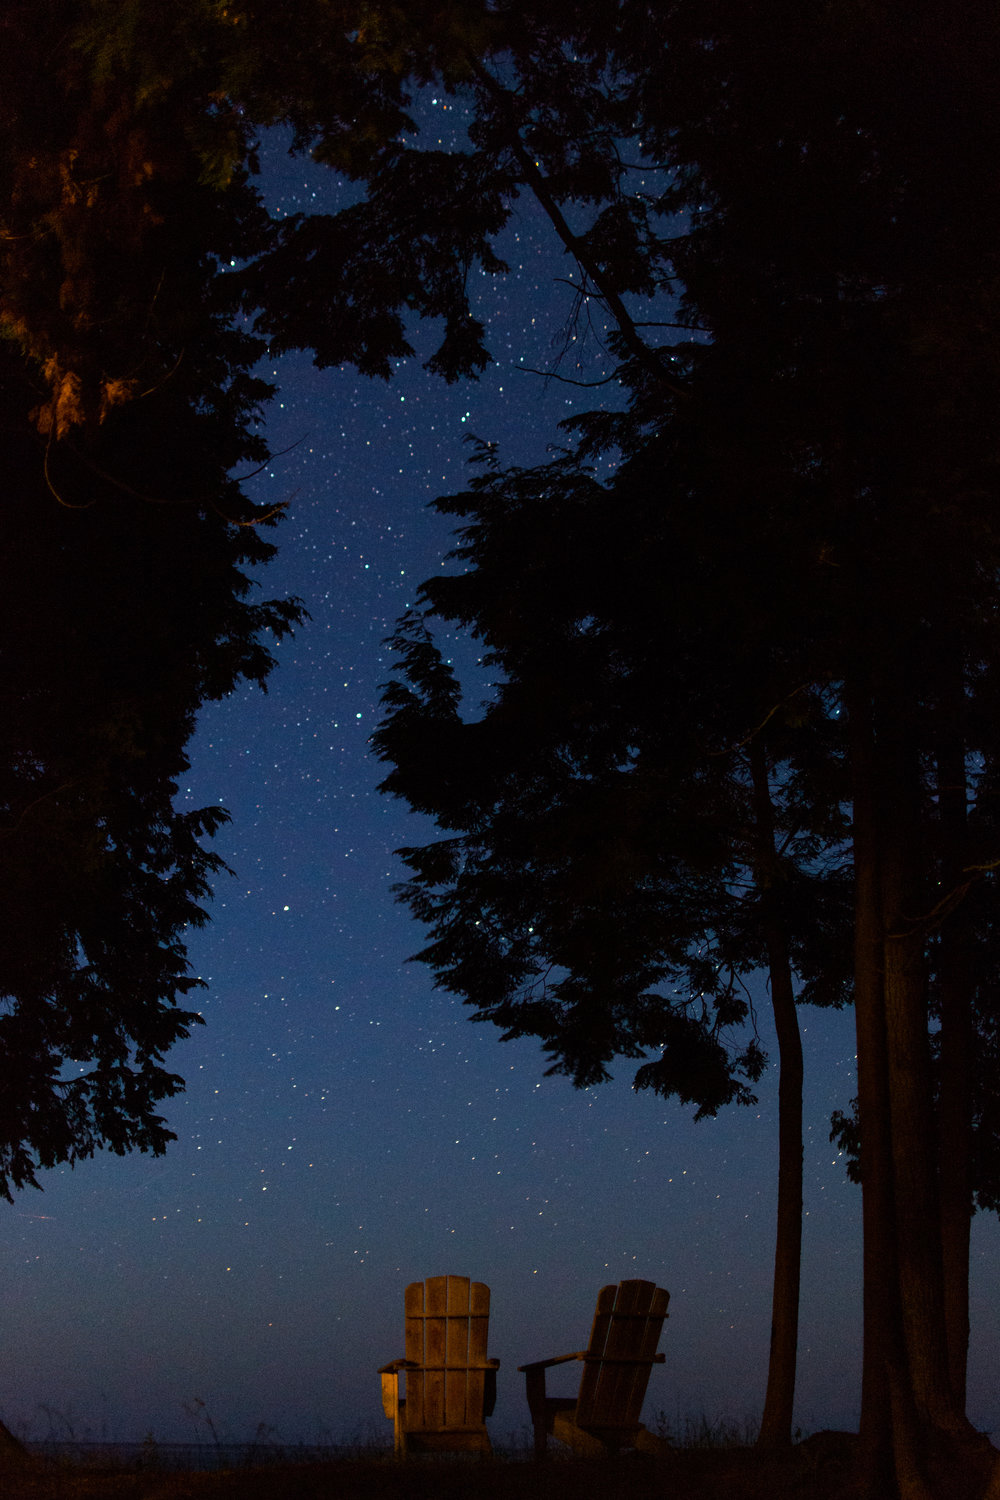 Door-County-Wisconsin-Stars-Astrophotography-Peaceful-midwestern-nights-Matt-Sampson-Photography.jpg